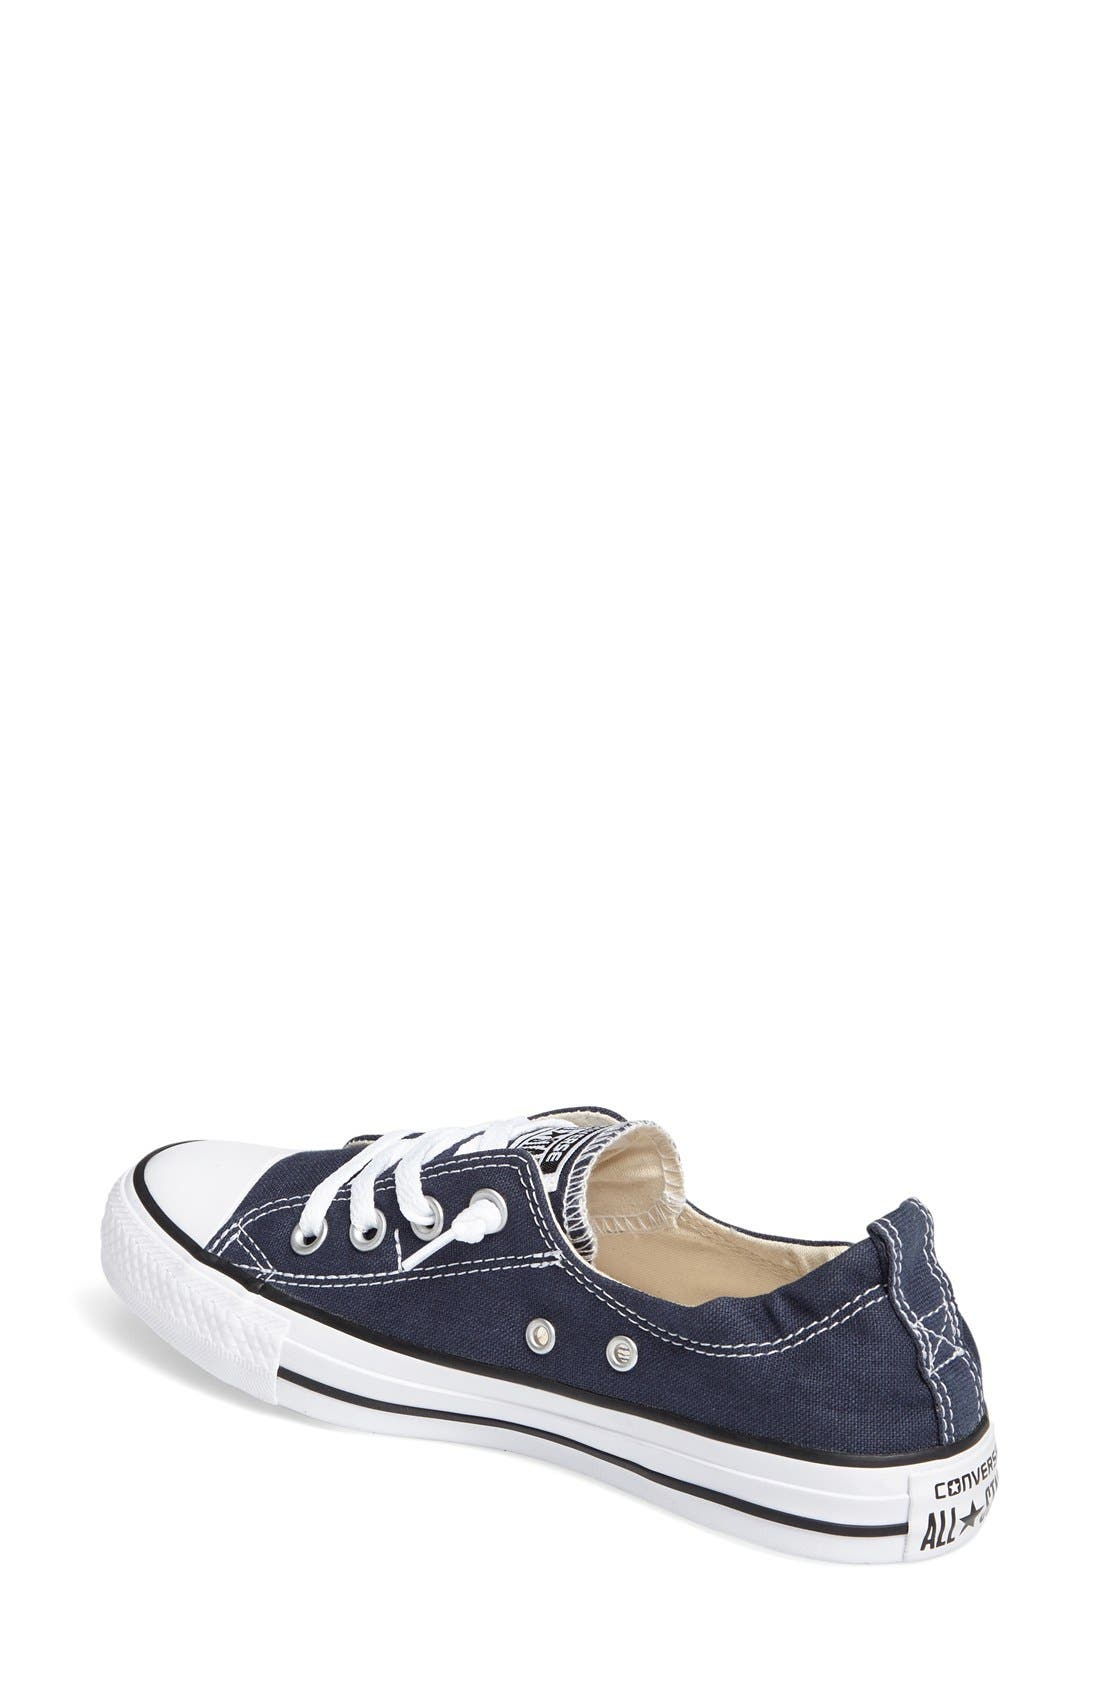 Chuck Taylor<sup>®</sup> 'Shoreline' Sneaker,                             Alternate thumbnail 8, color,                             NAVY